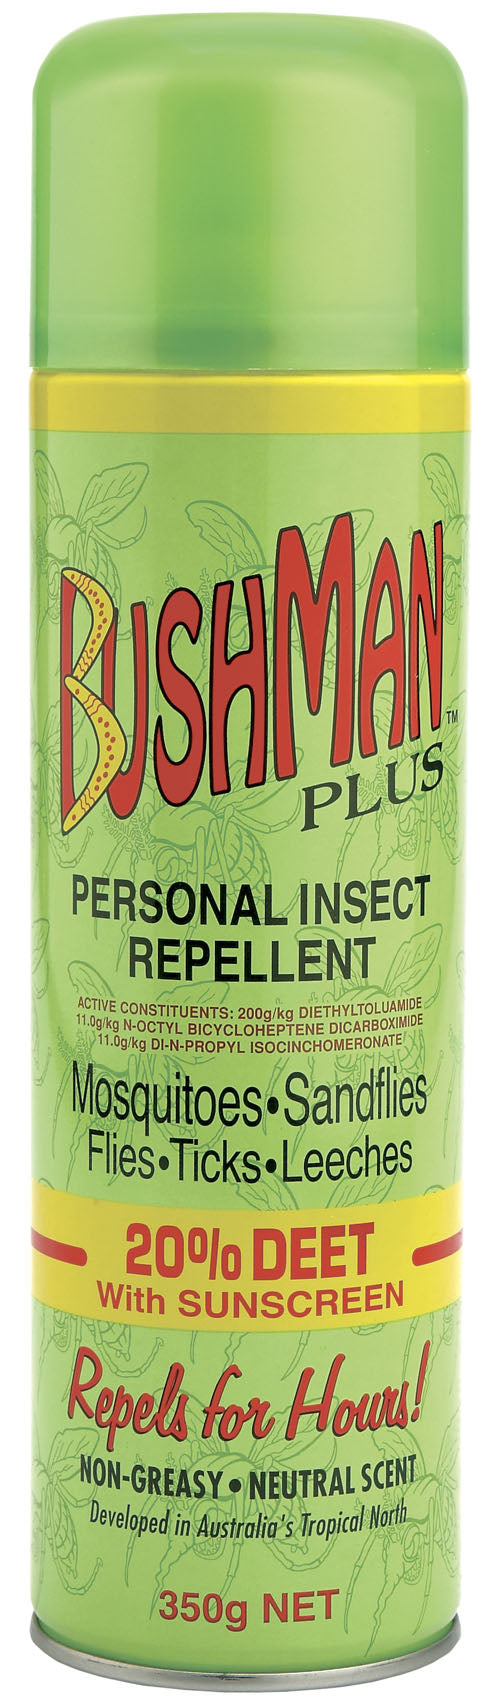 Bushmans Plus 350g Aerosol 20% Deet With SPF